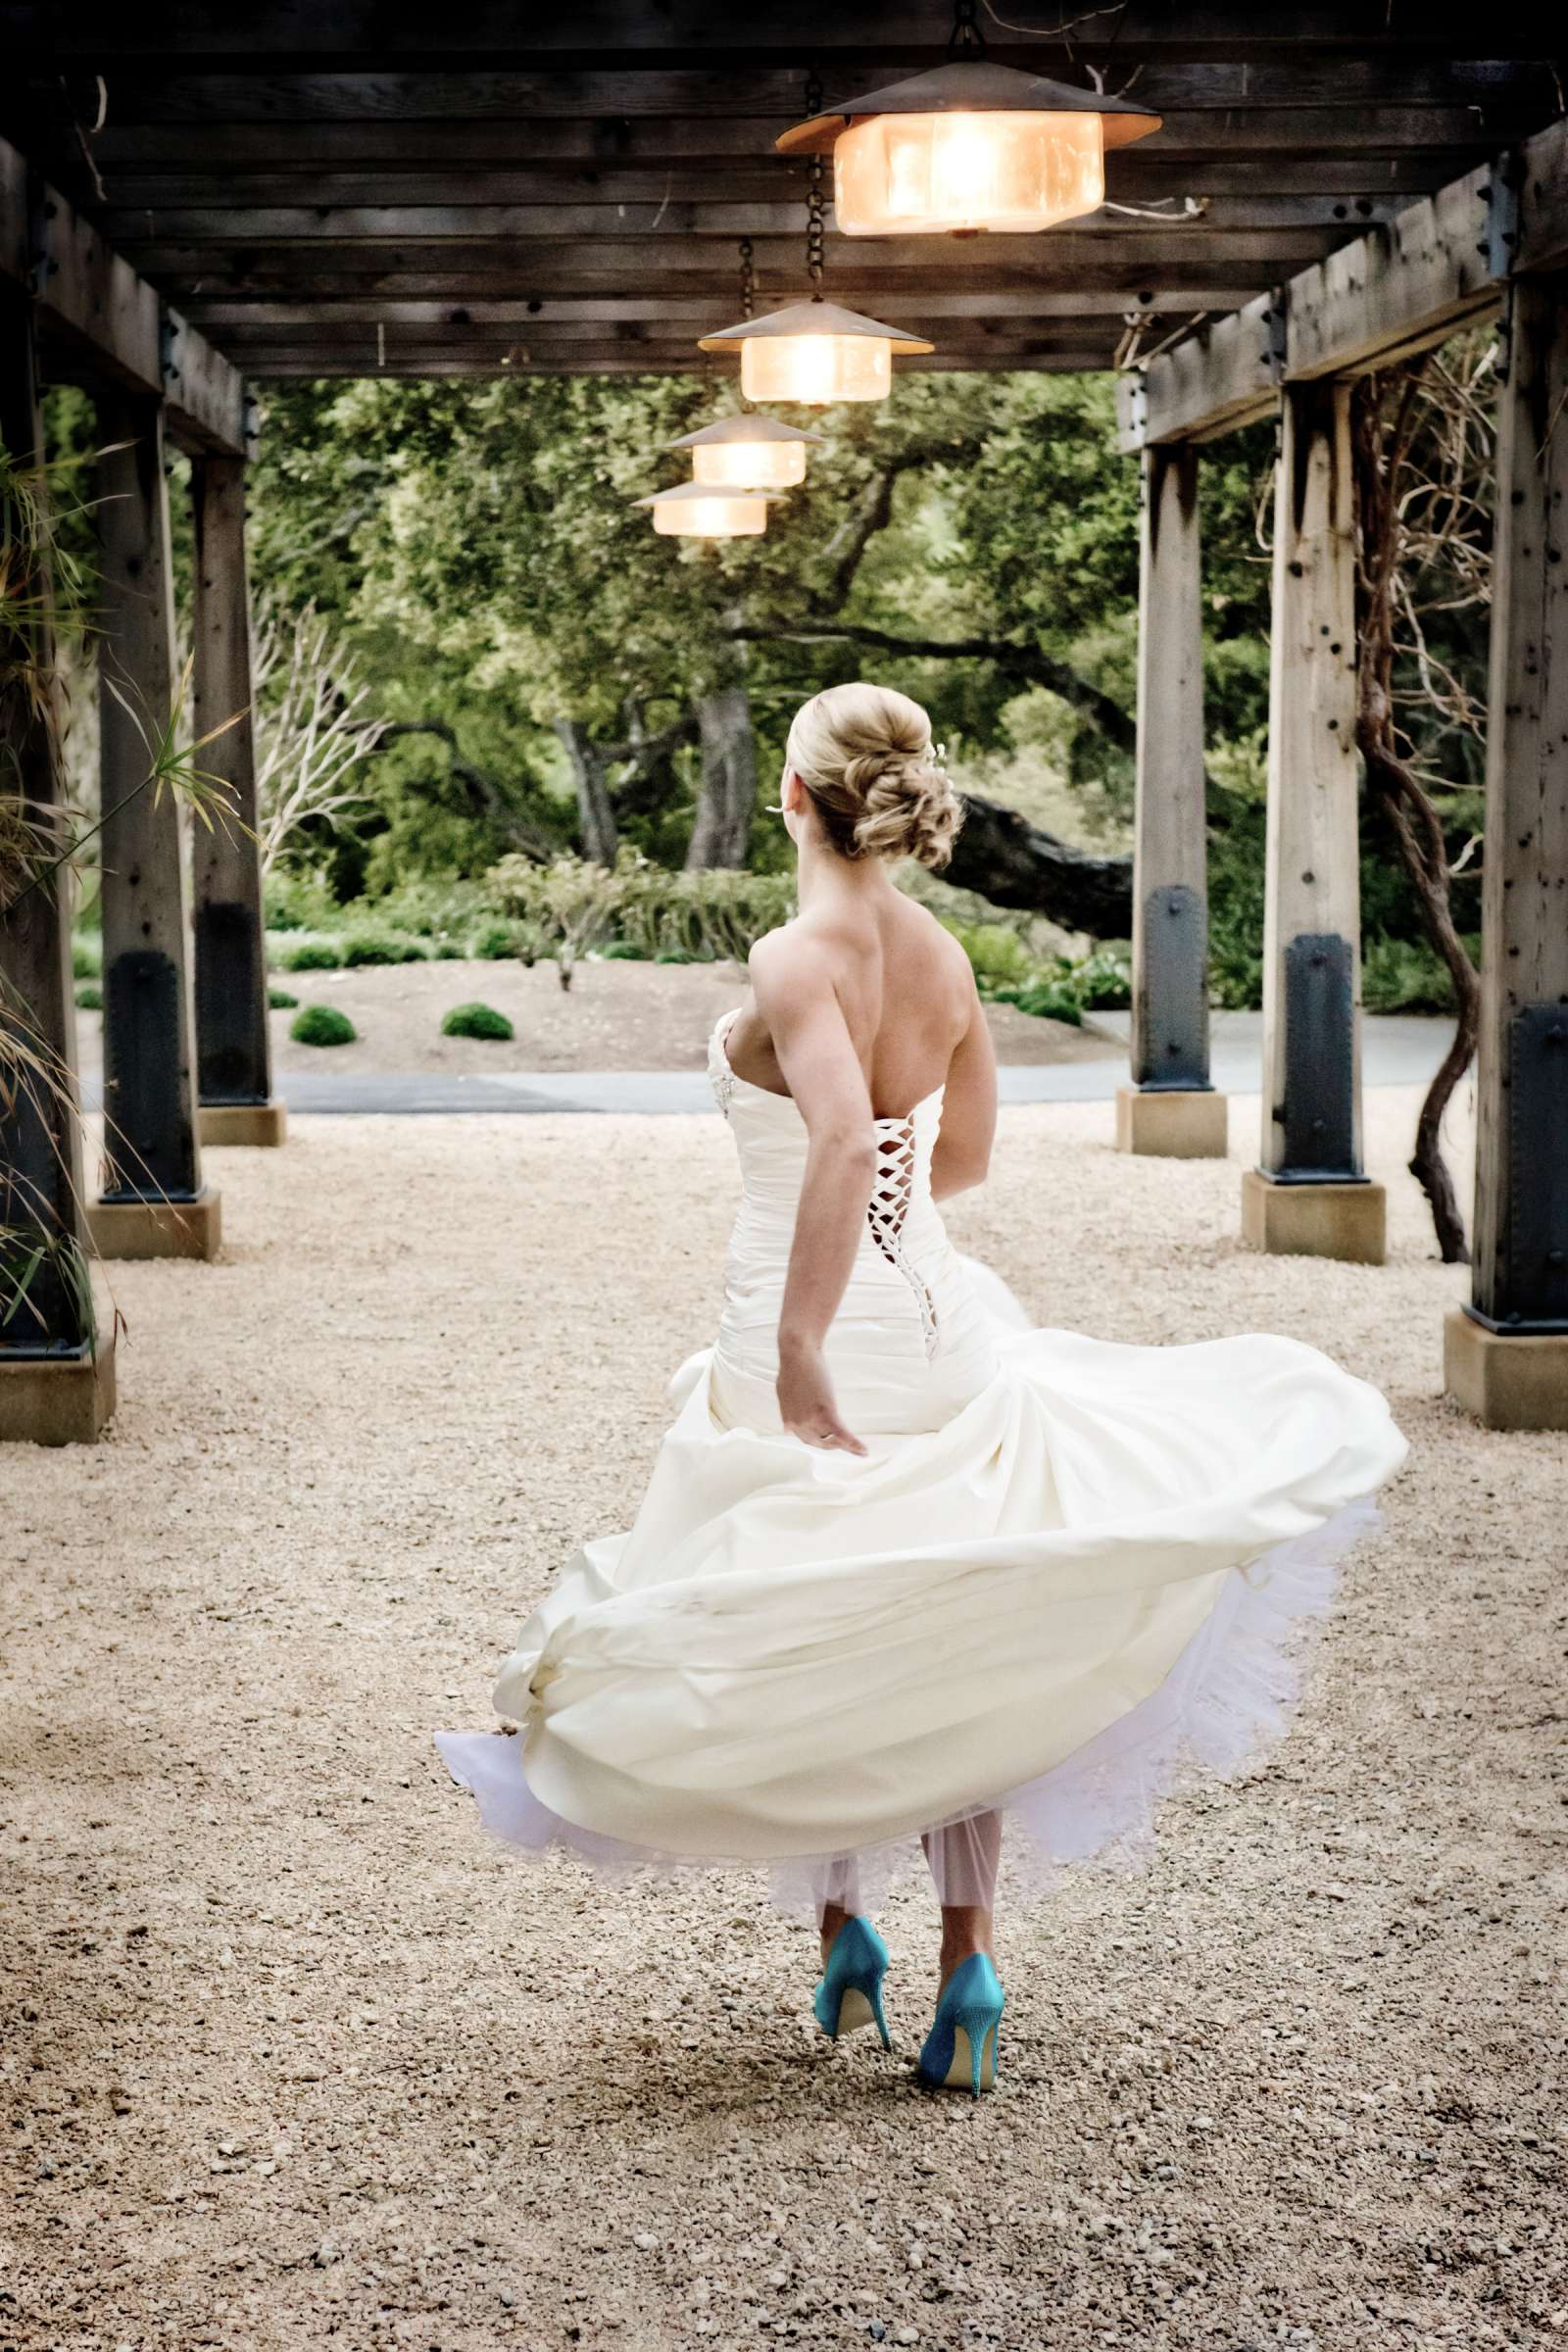 Holman Ranch Wedding, Kaley and Jason Wedding Photo #356231 by True Photography